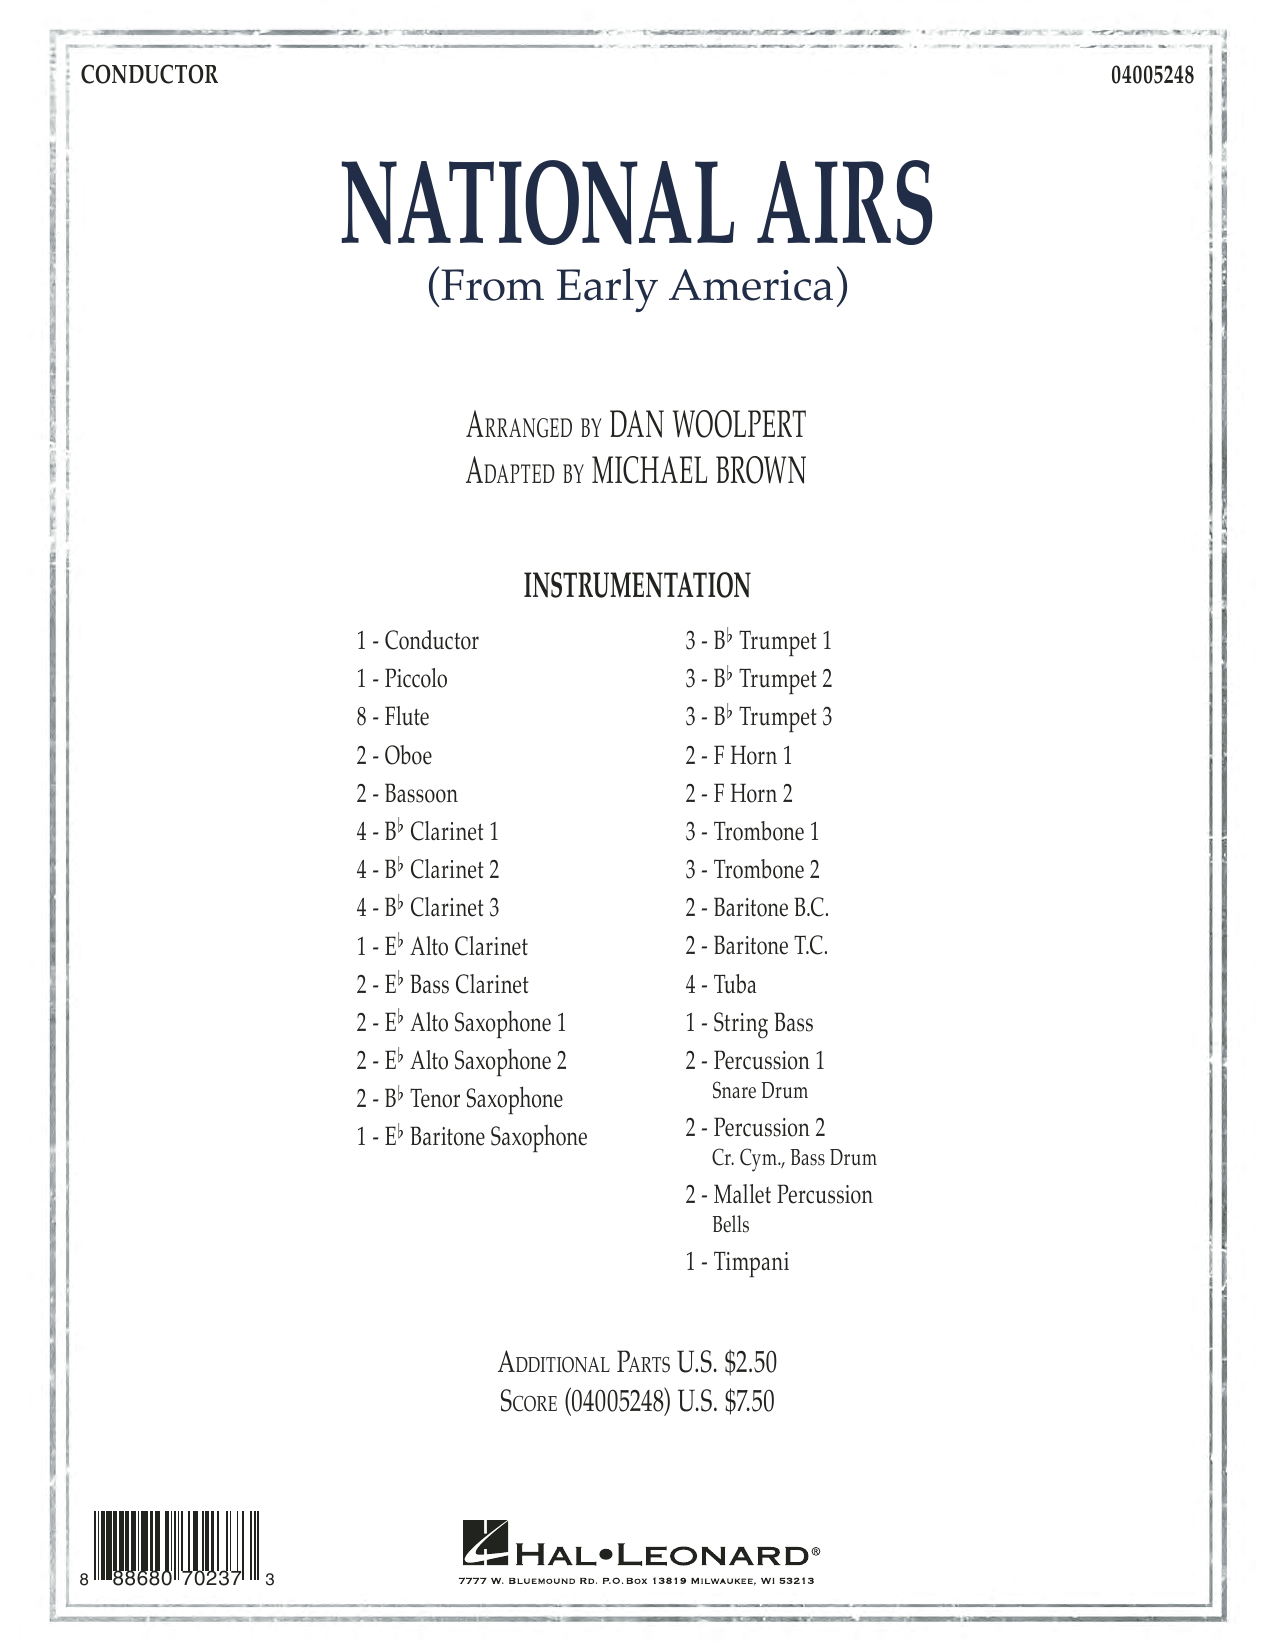 National Airs (from Early America) - Conductor Score (Full Score) (Concert Band)